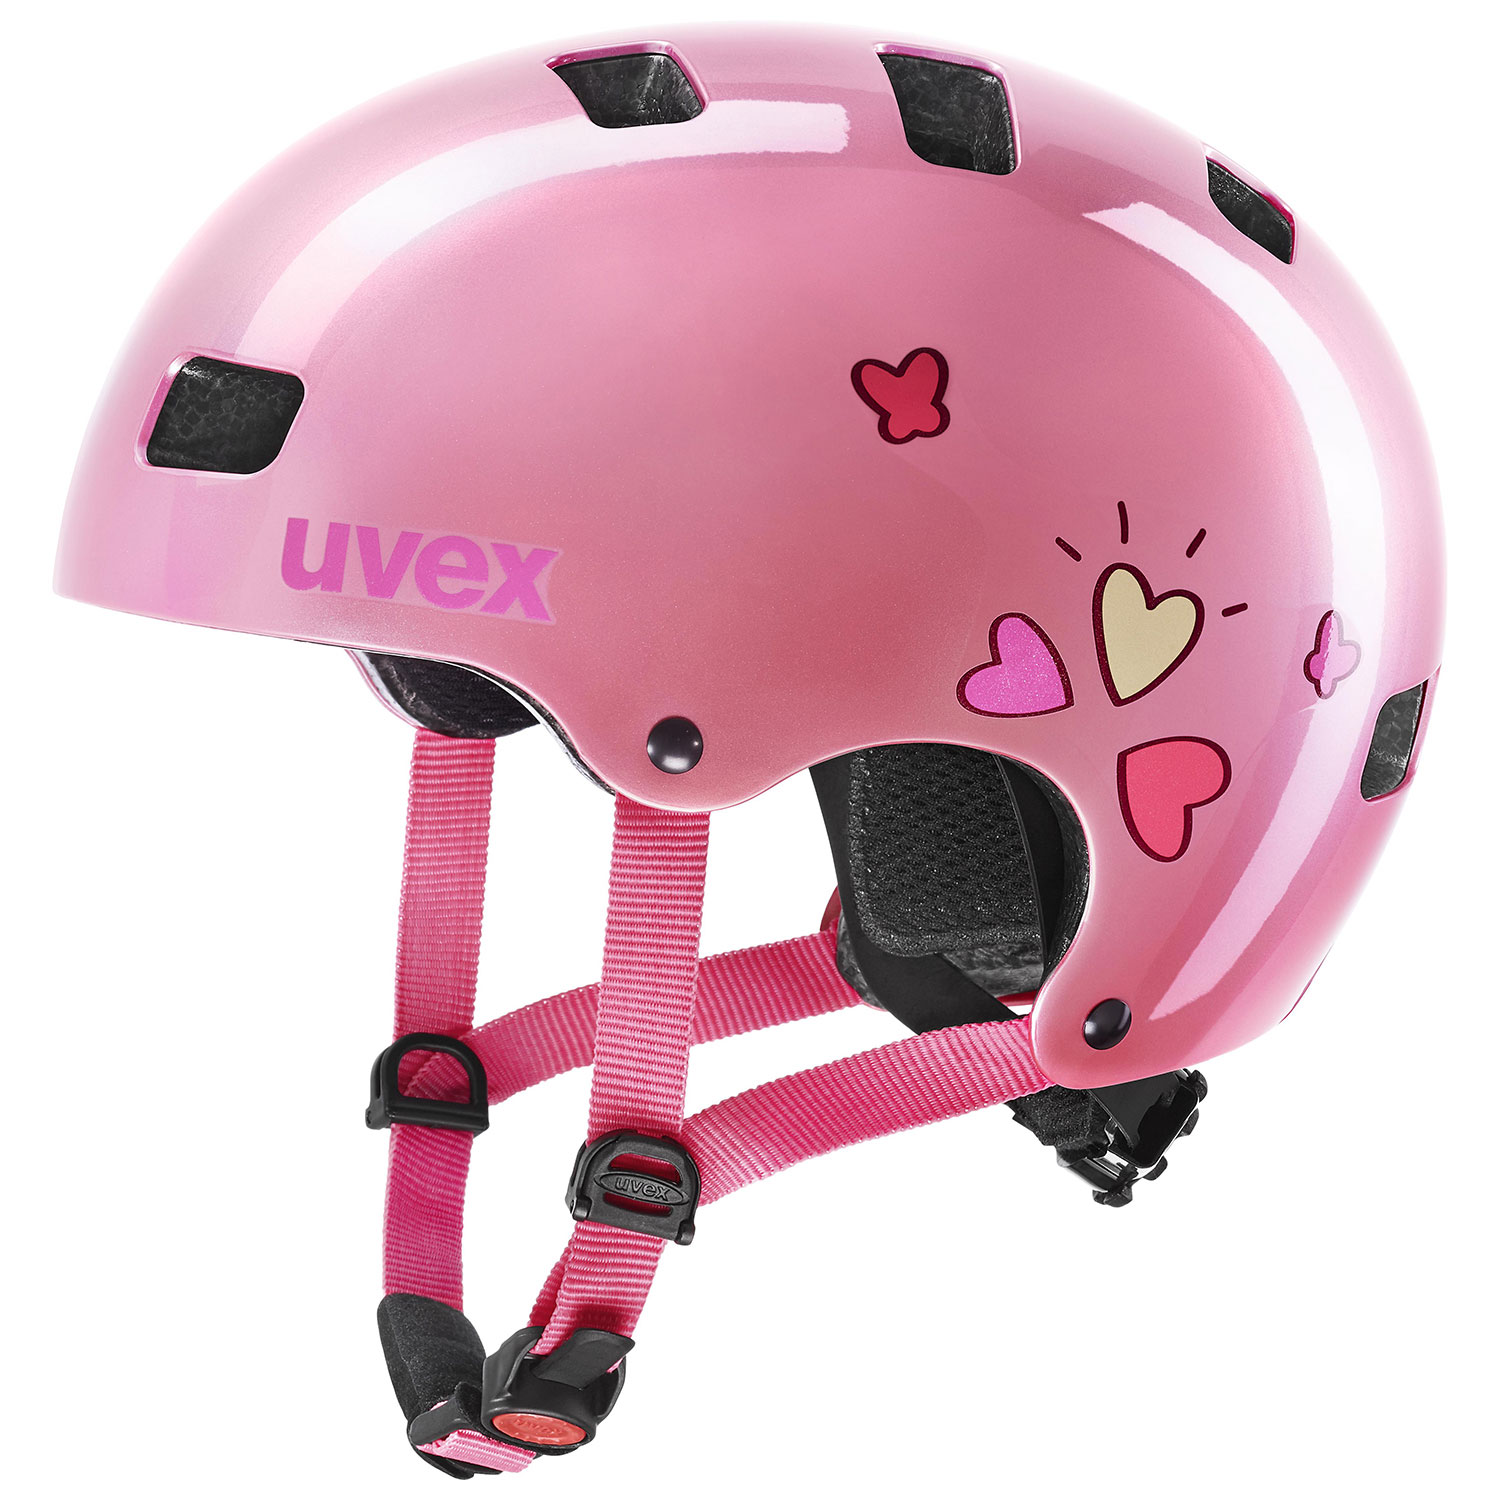 2021 UVEX HELMA KID 3, PINK HEART 51-55